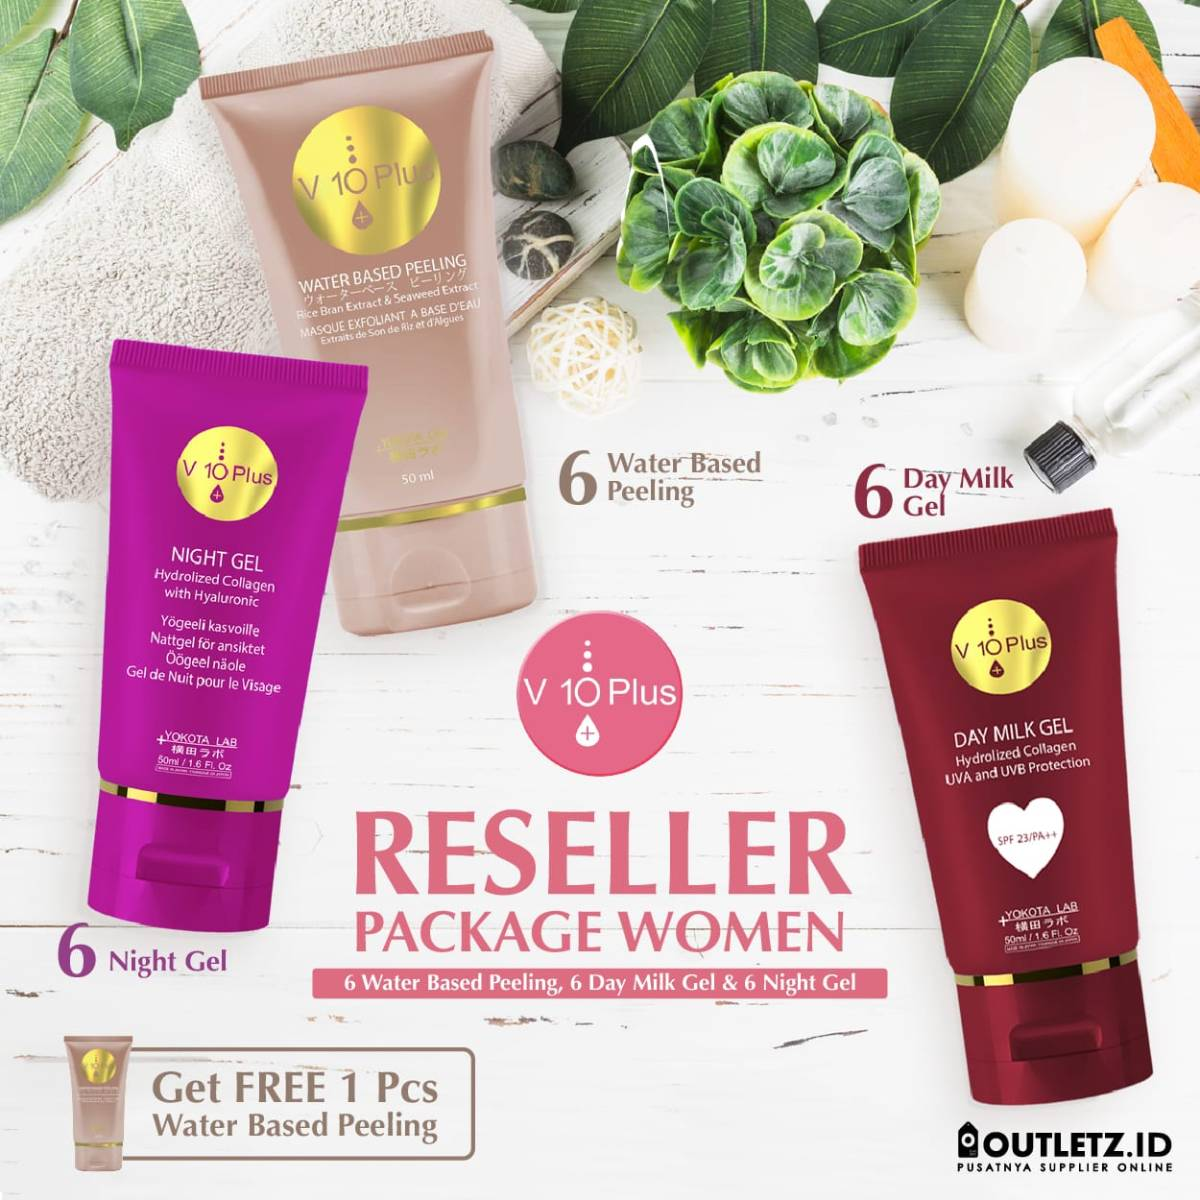 V10 Plus Women Reseller Package0